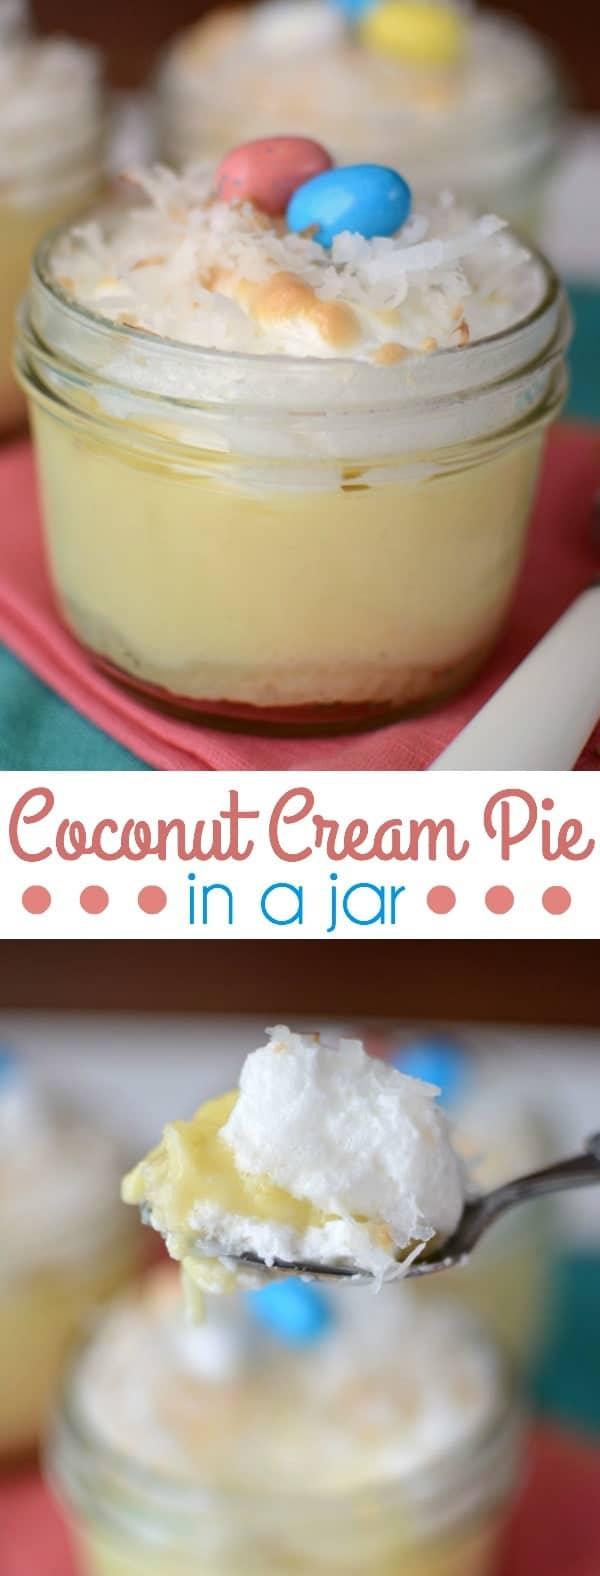 coconut cream pies in jars with jelly beans on top collage